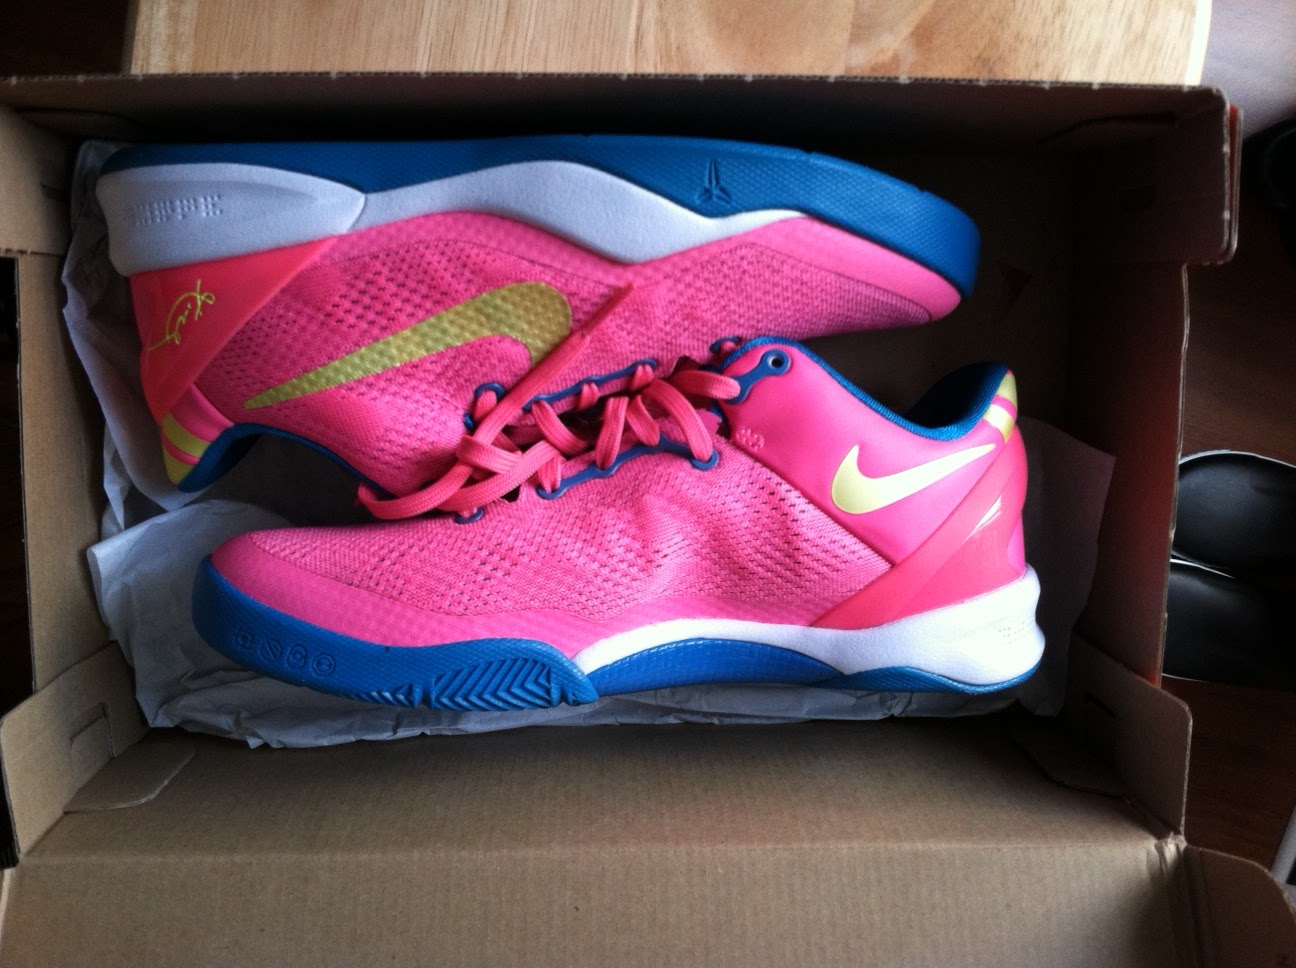 9a6a0de6216c I definitely got my hands on a steal today and I might have to go back soon  and get the all blue Kobe 8 s also.